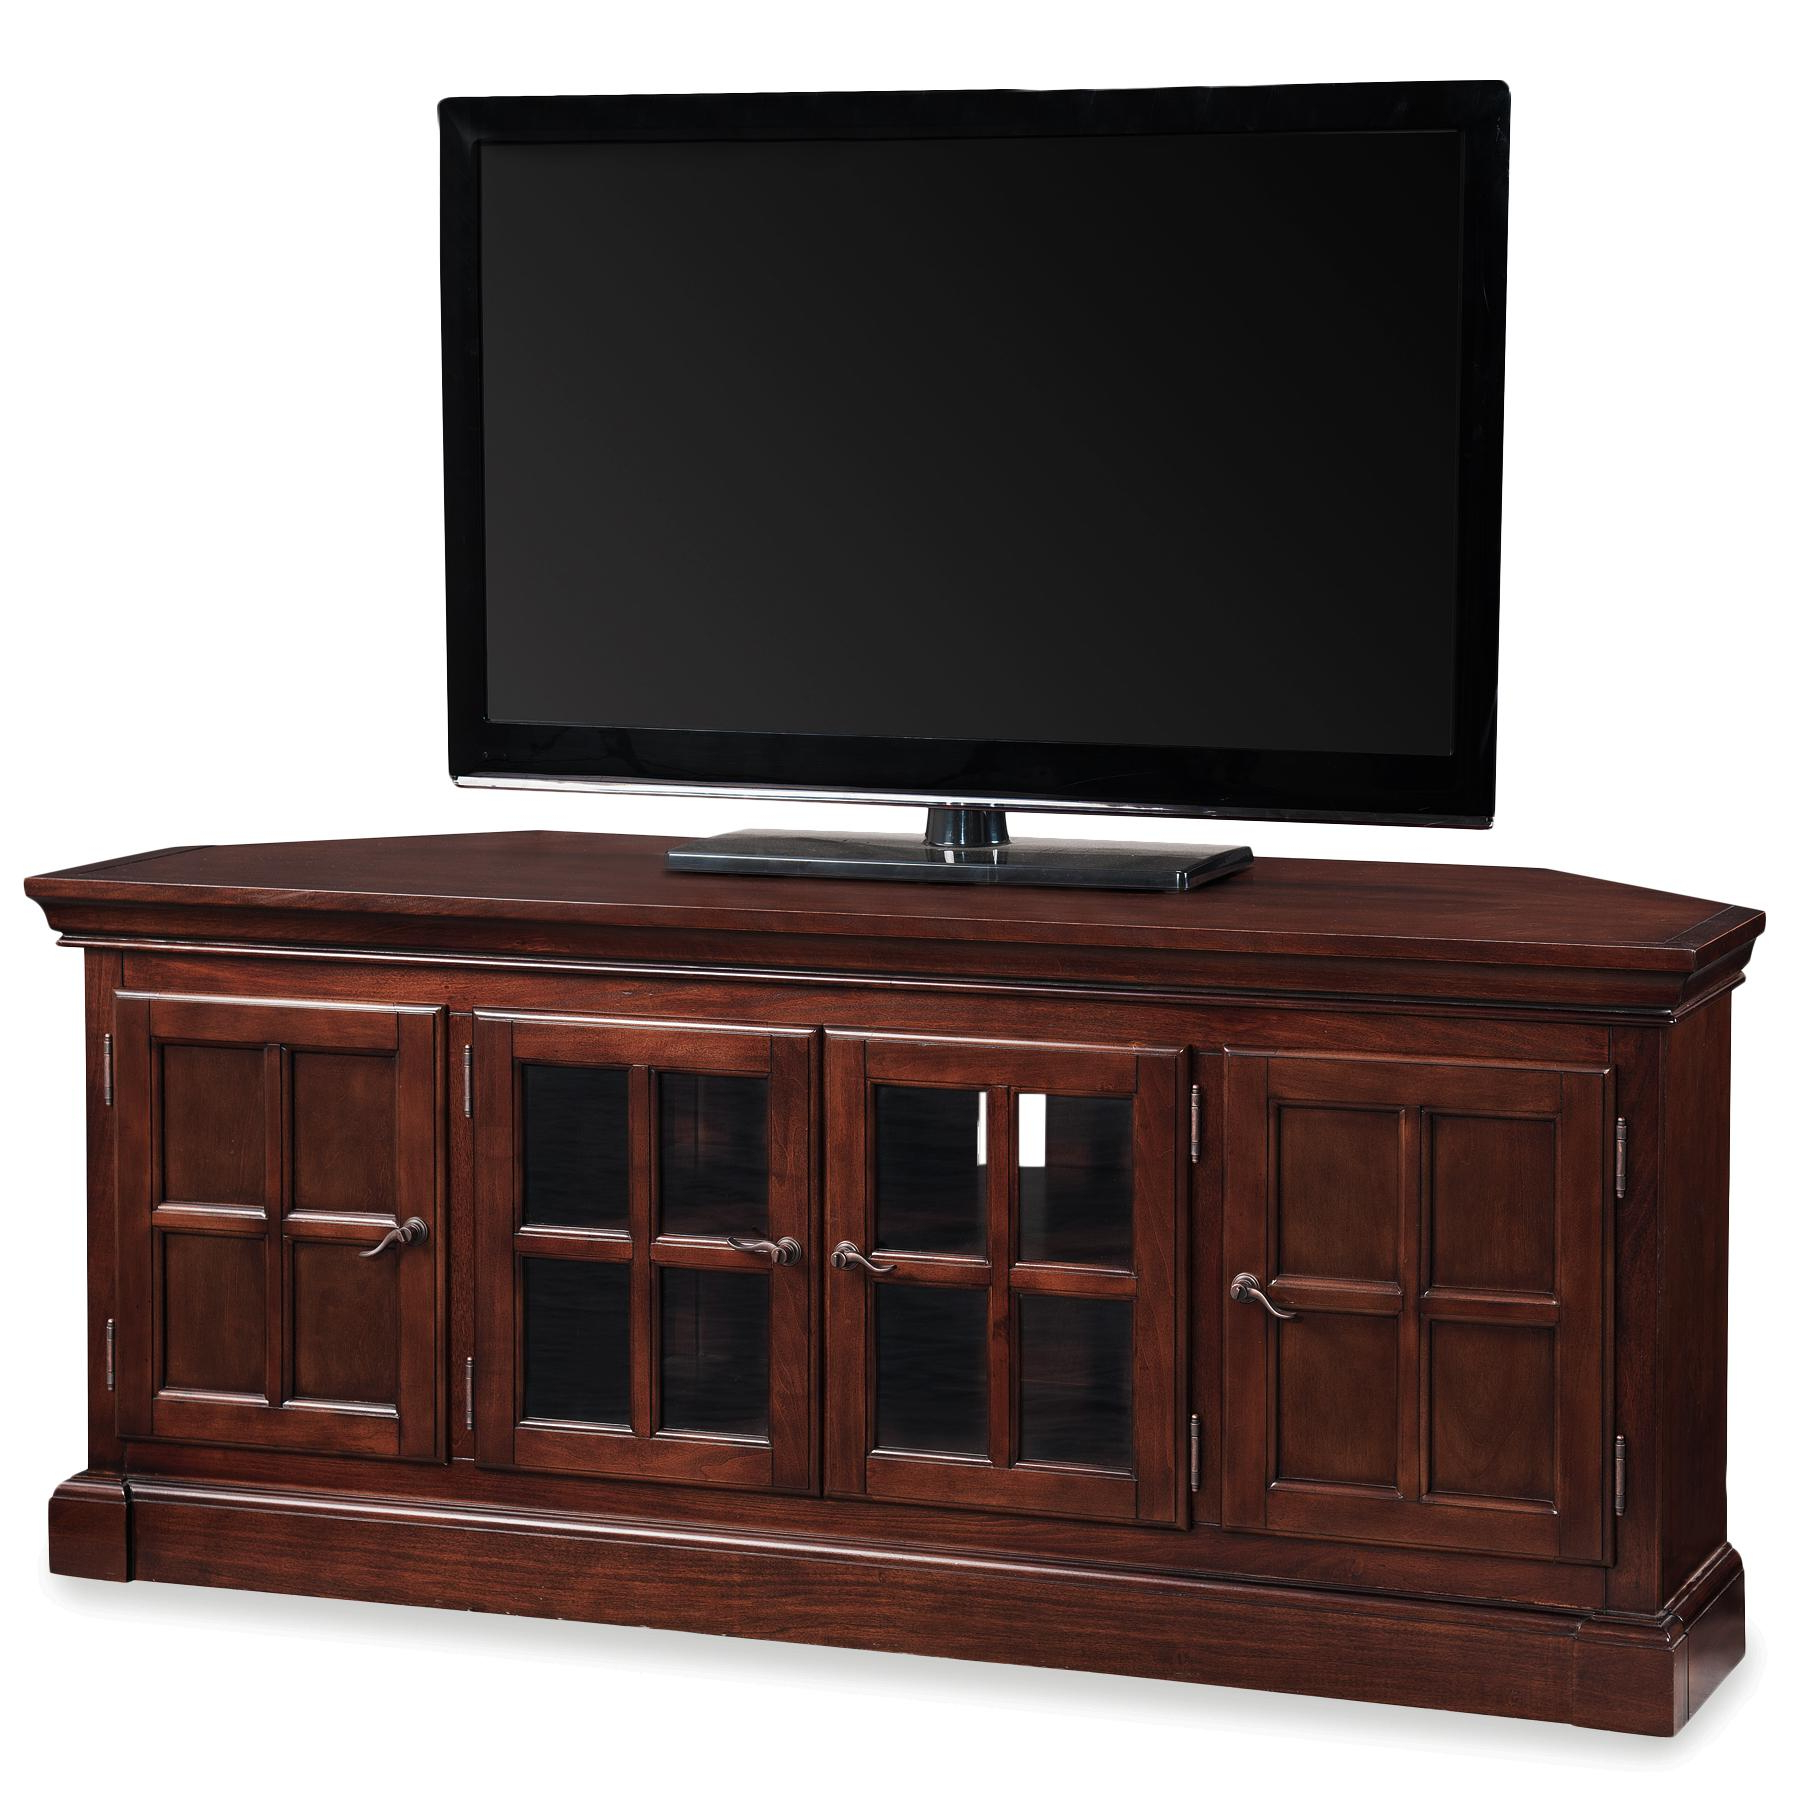 "Latest Leick 81586 Bella Maison 56"" Corner Tv Stand With Lever Handles, Chocolate Cherry Inside Corner Wooden Tv Stands (View 8 of 20)"